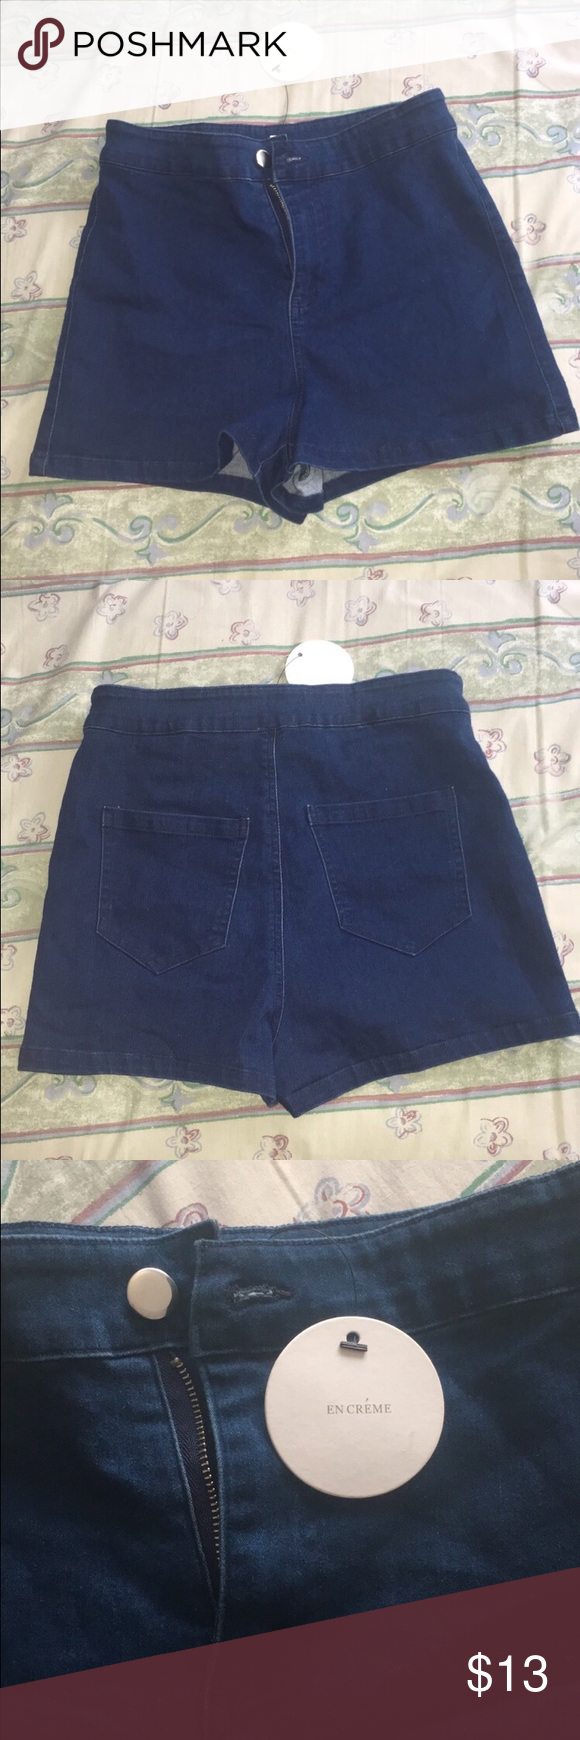 High waisted shorts New with tags never worn high wasted shorts. Stretchy material yet still has that denim look to it. For very petite ladies but has stretchy material. Size small/XS. En créme Shorts Jean Shorts